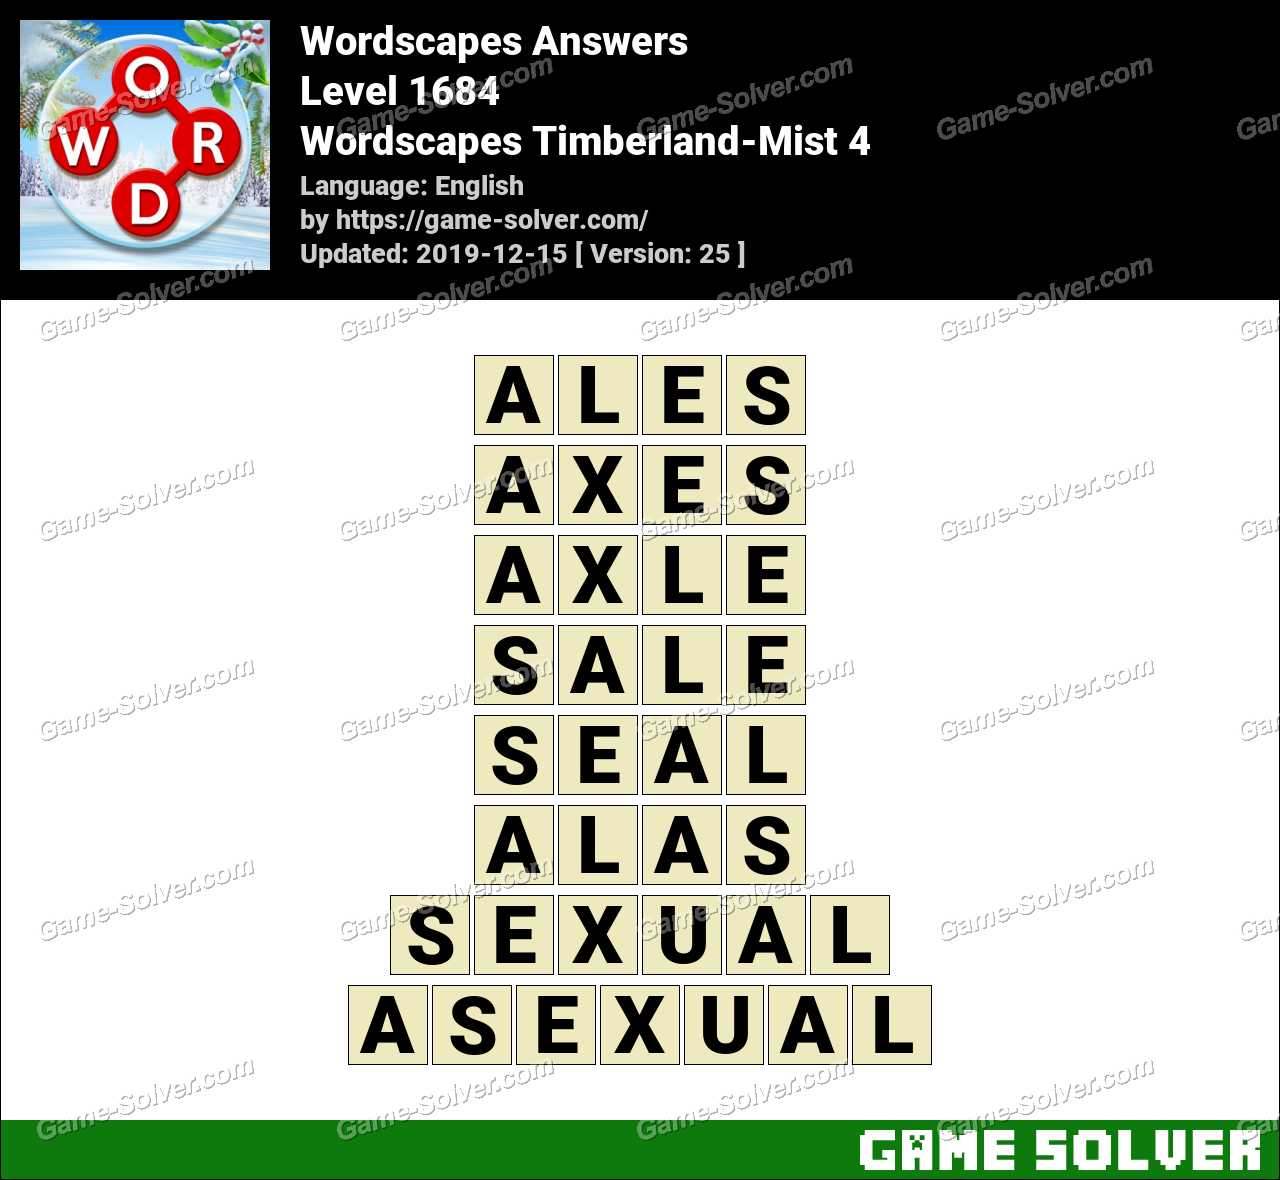 Wordscapes Timberland-Mist 4 Answers